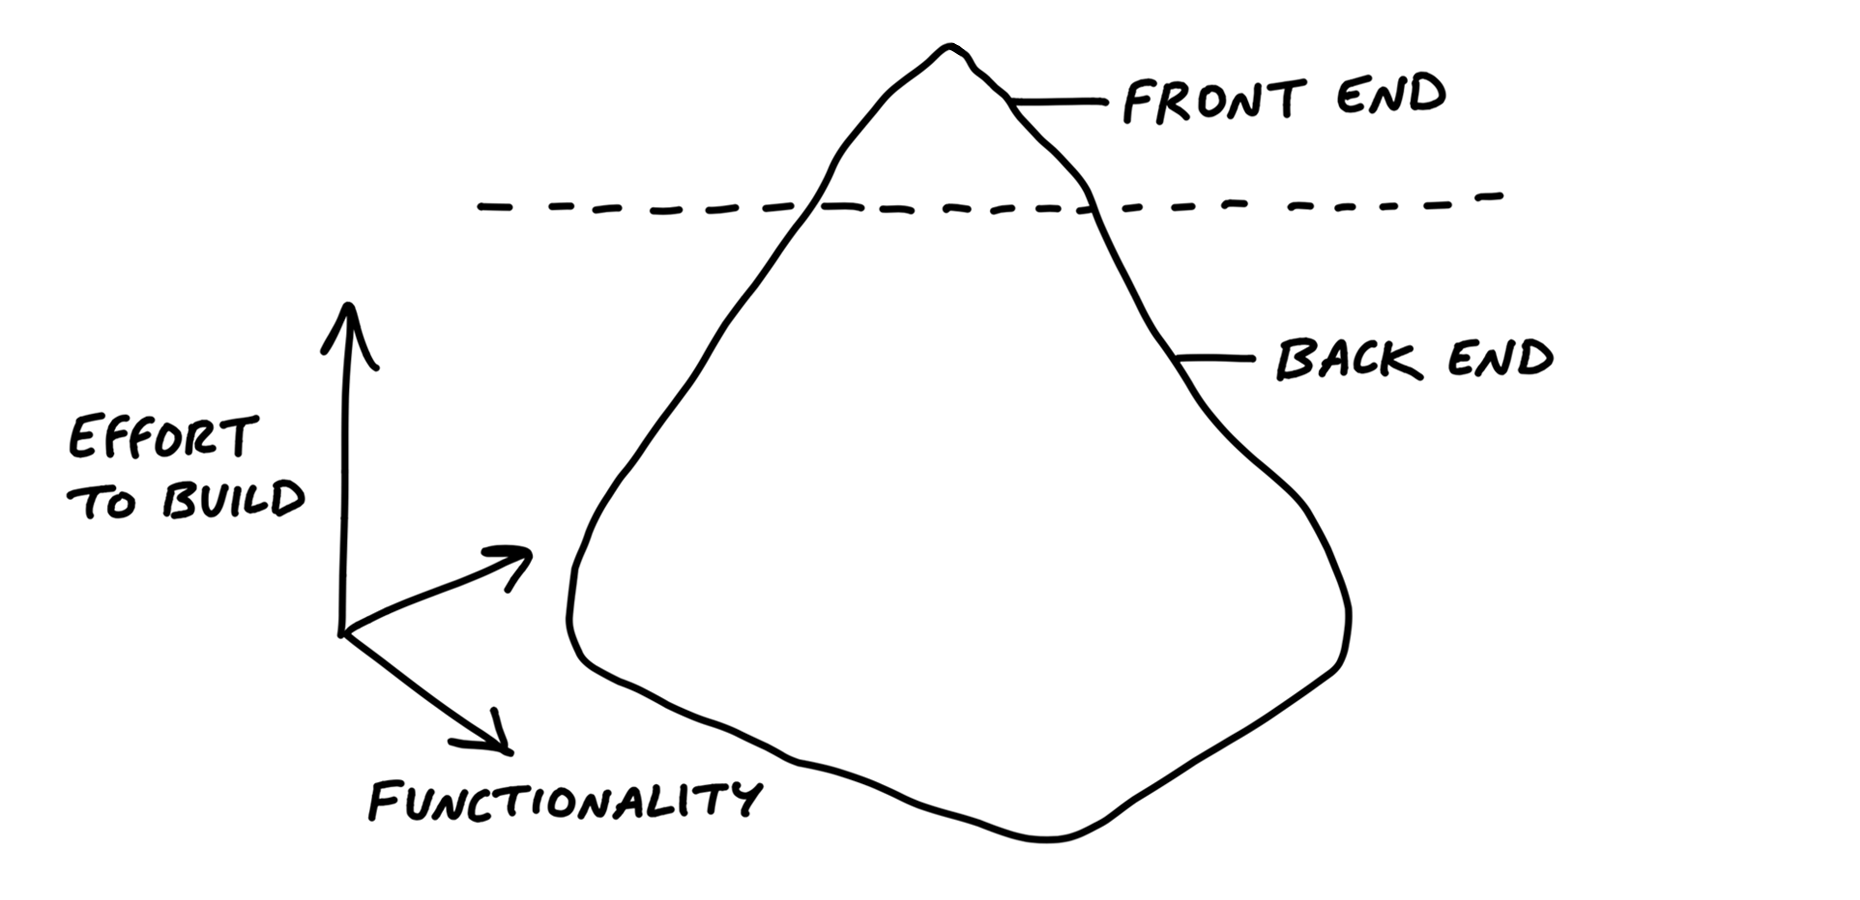 An iceberg is drawn with the same three dimensional axis: height represents effort to build and width and depth represent funtionality. A dotted line marks the water line. The small area above the water line is marked Front End and the rest below the line is marked Back End.